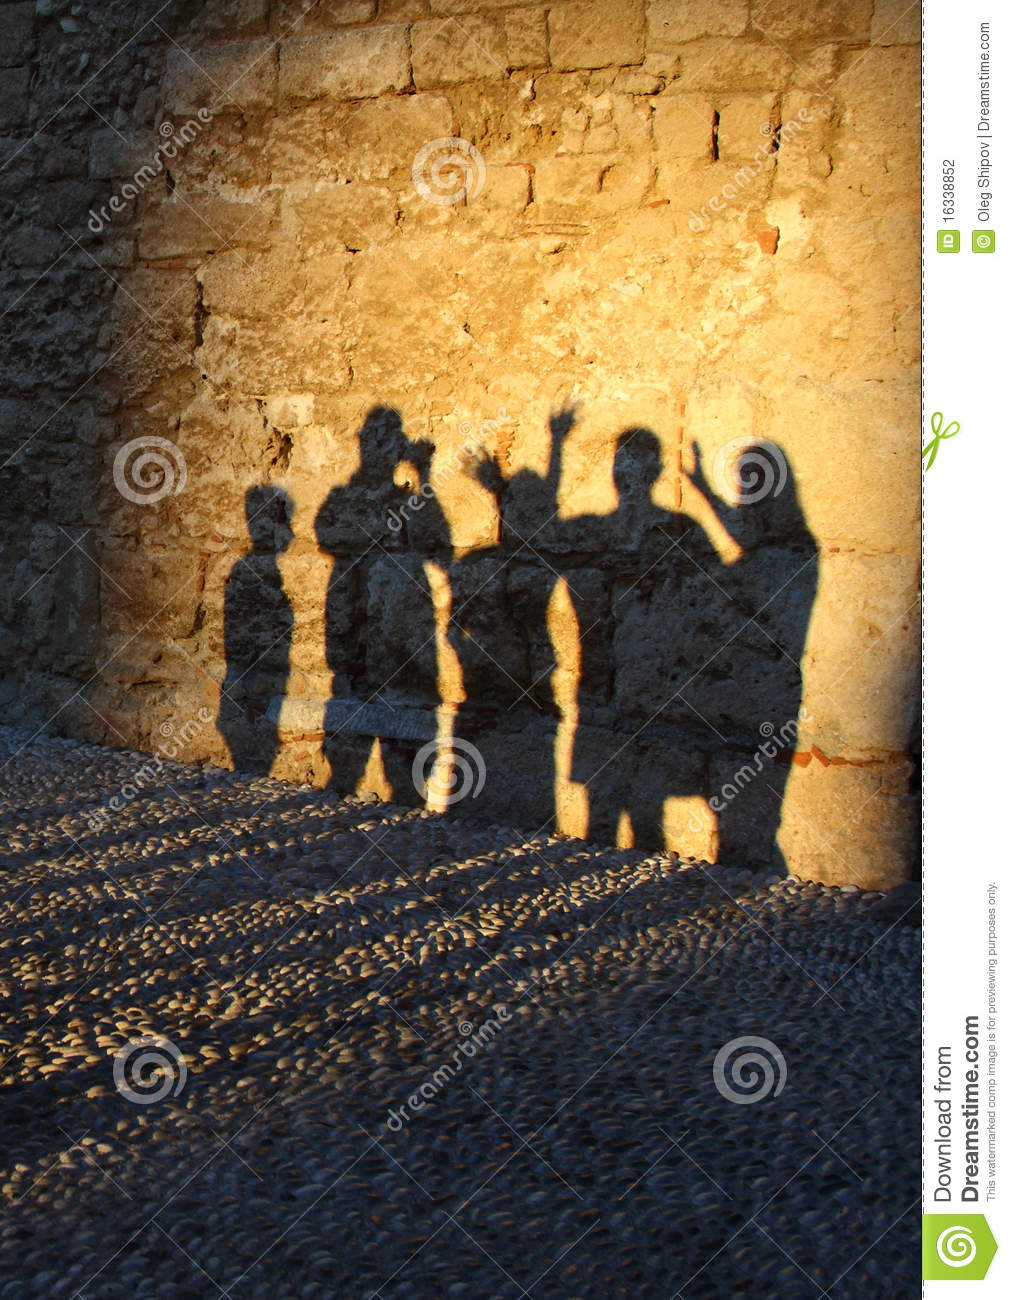 Sombras humanas